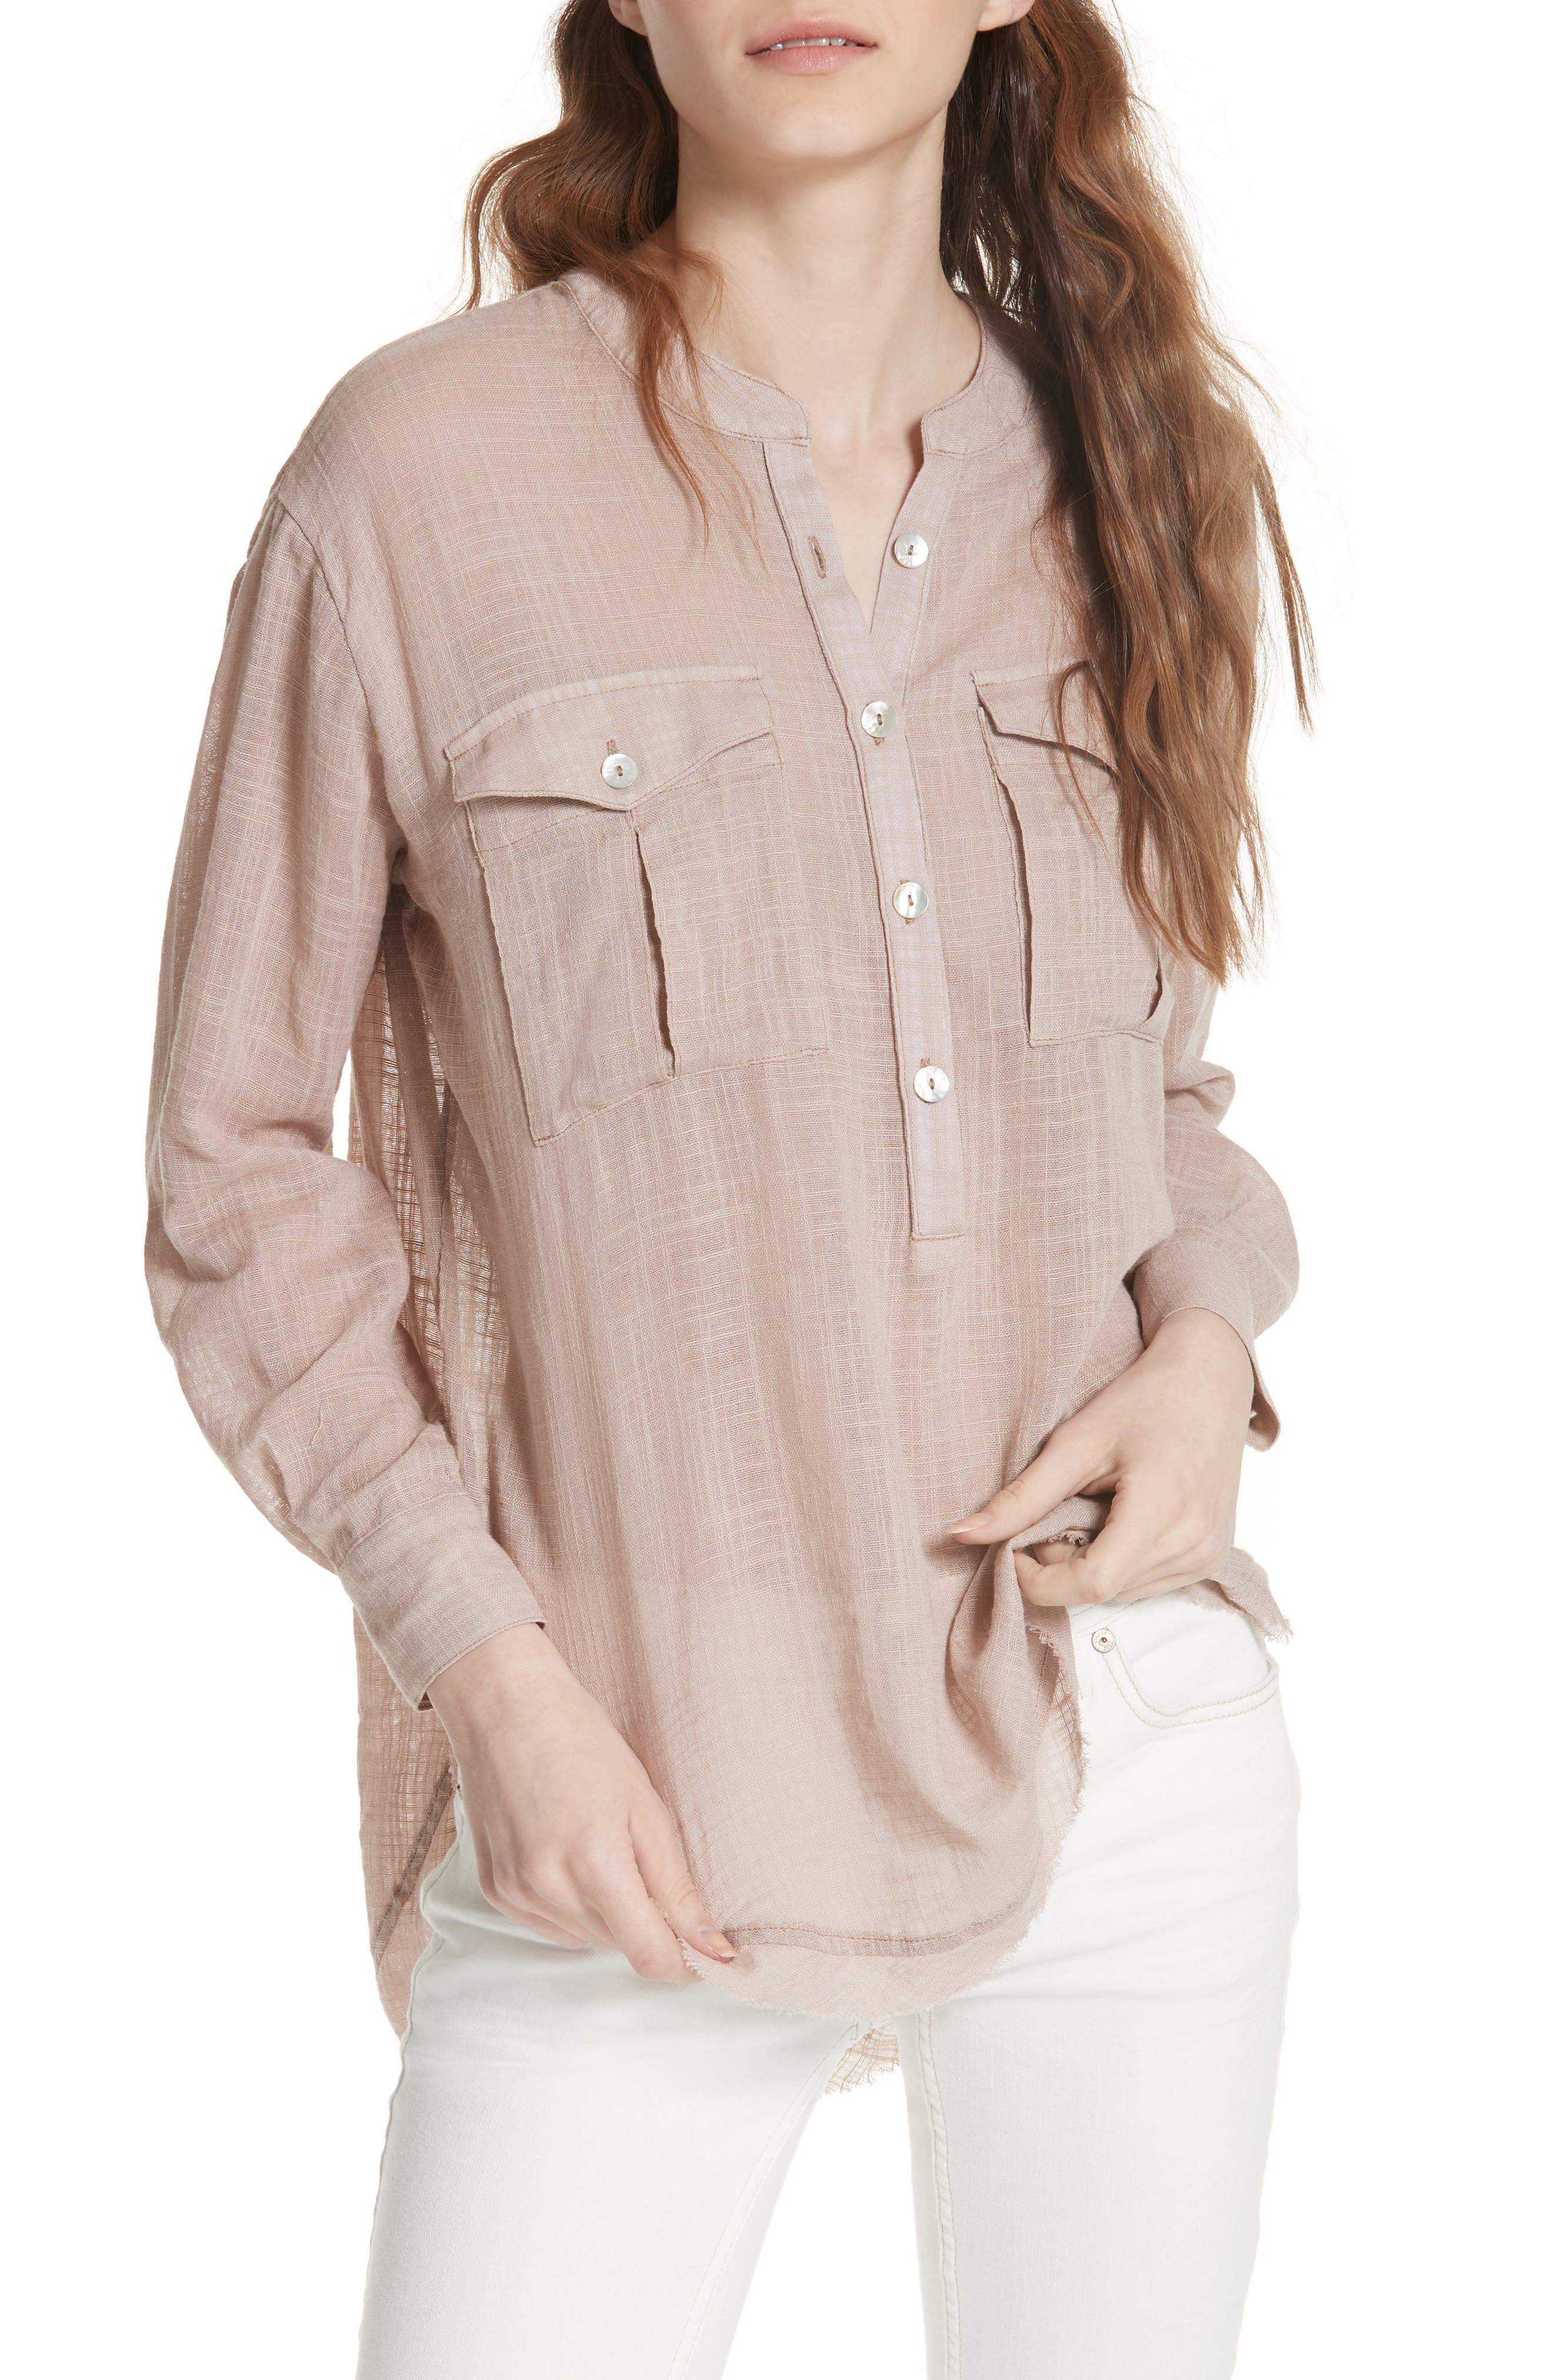 Talk to Me Top,                         Main,                         color, 058